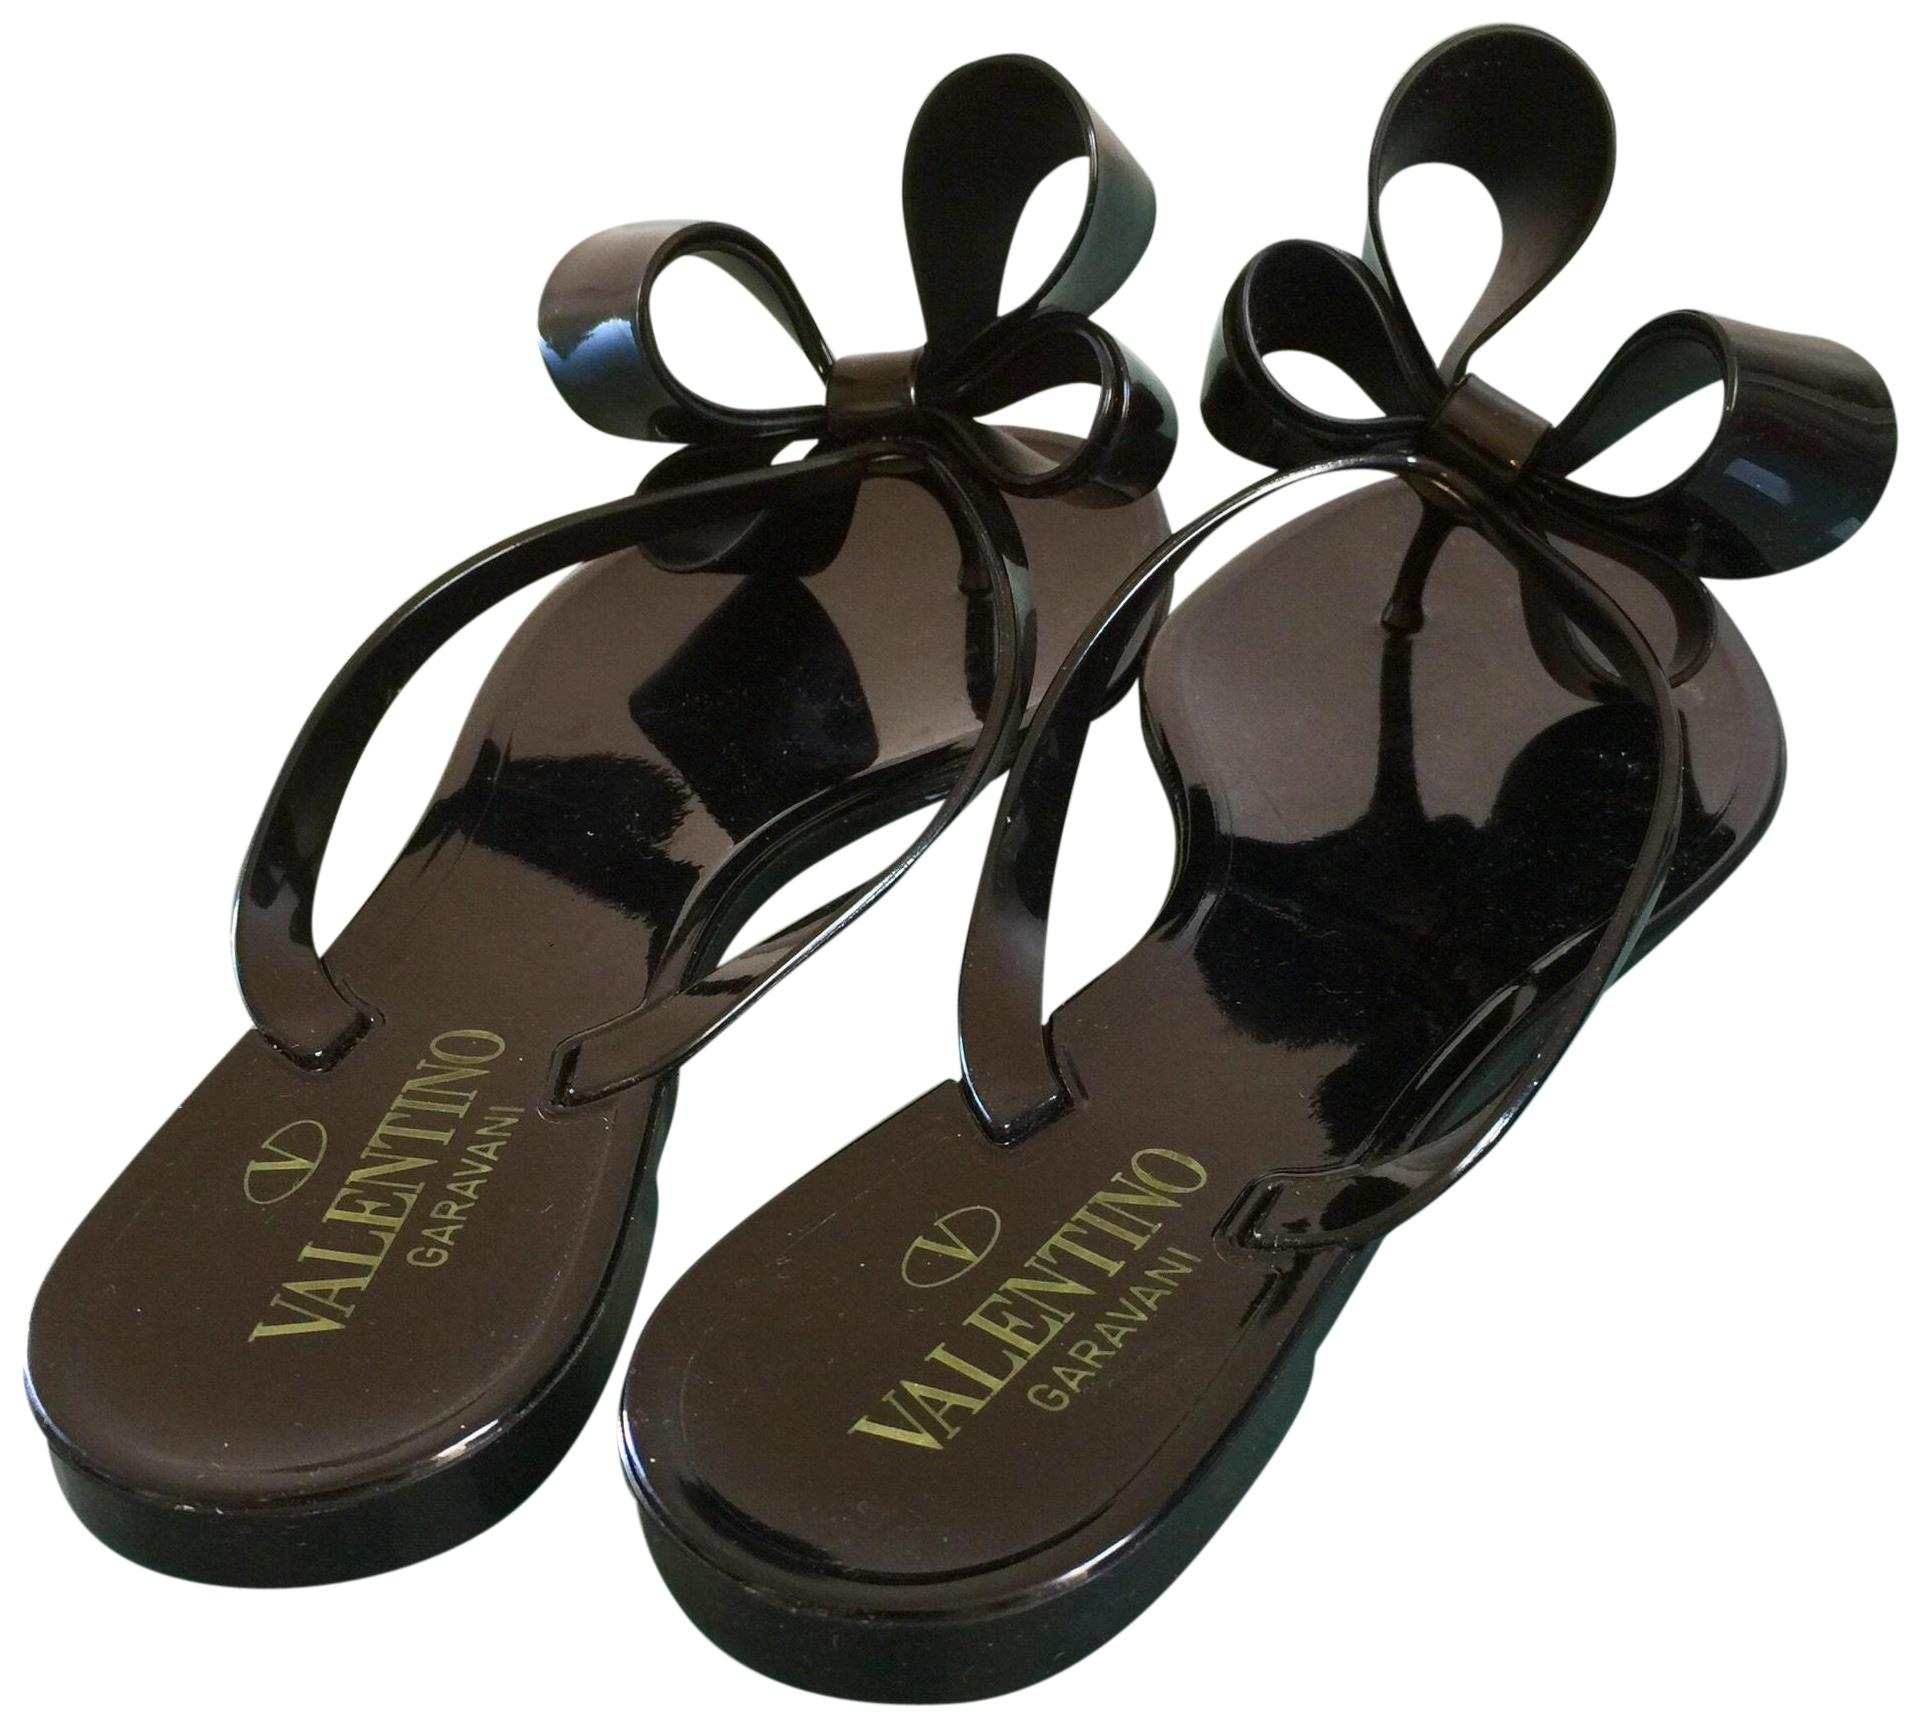 Valentino Black Limited Edition Jelly Thong Sandals Size US 6 Regular (M, B)